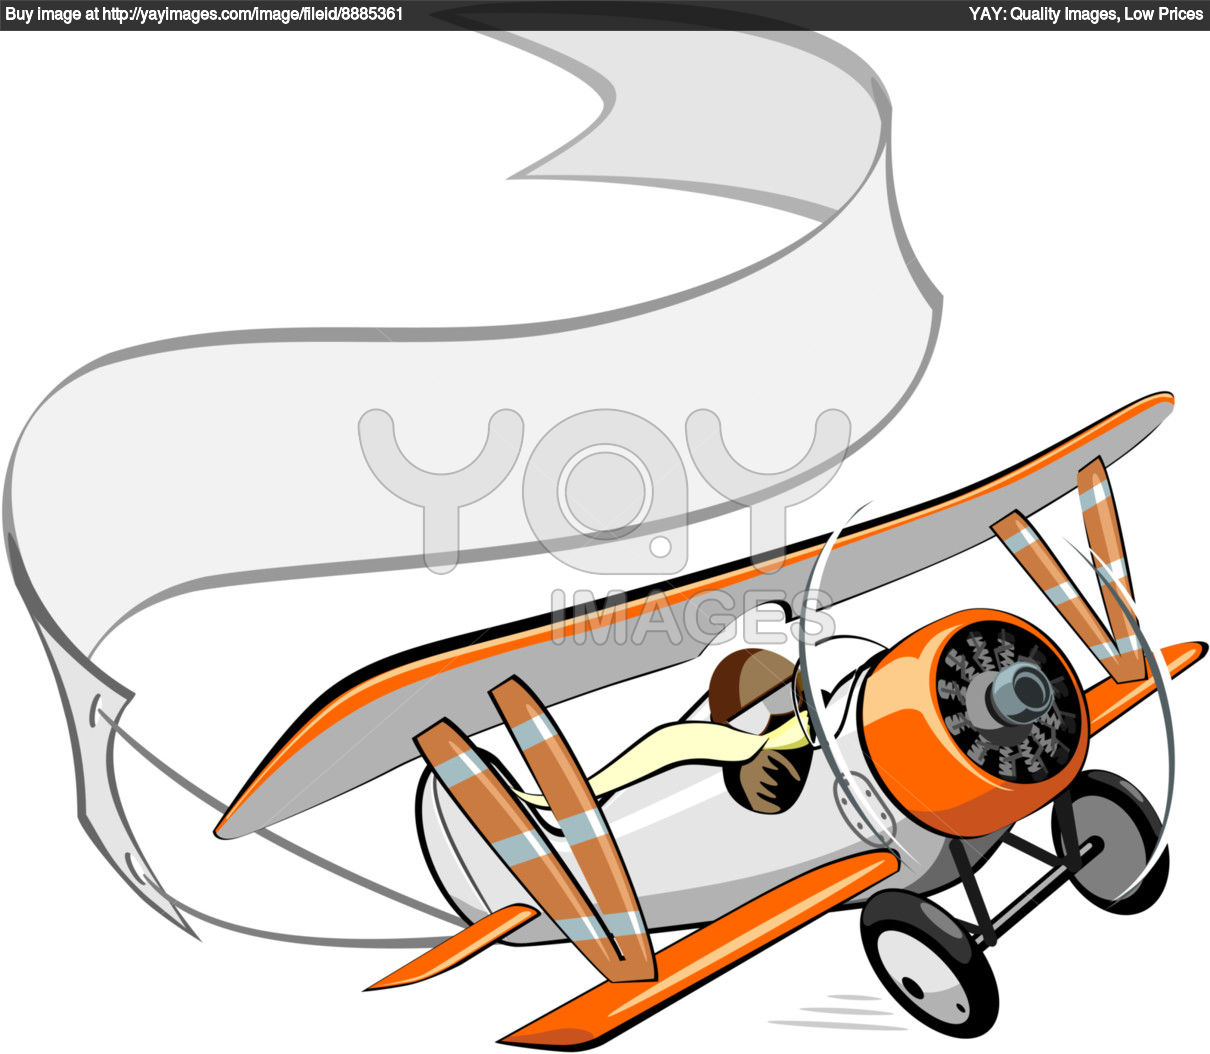 1210x1054 Clip Art Airplane Banner Clip Art With Images Airplane Banner